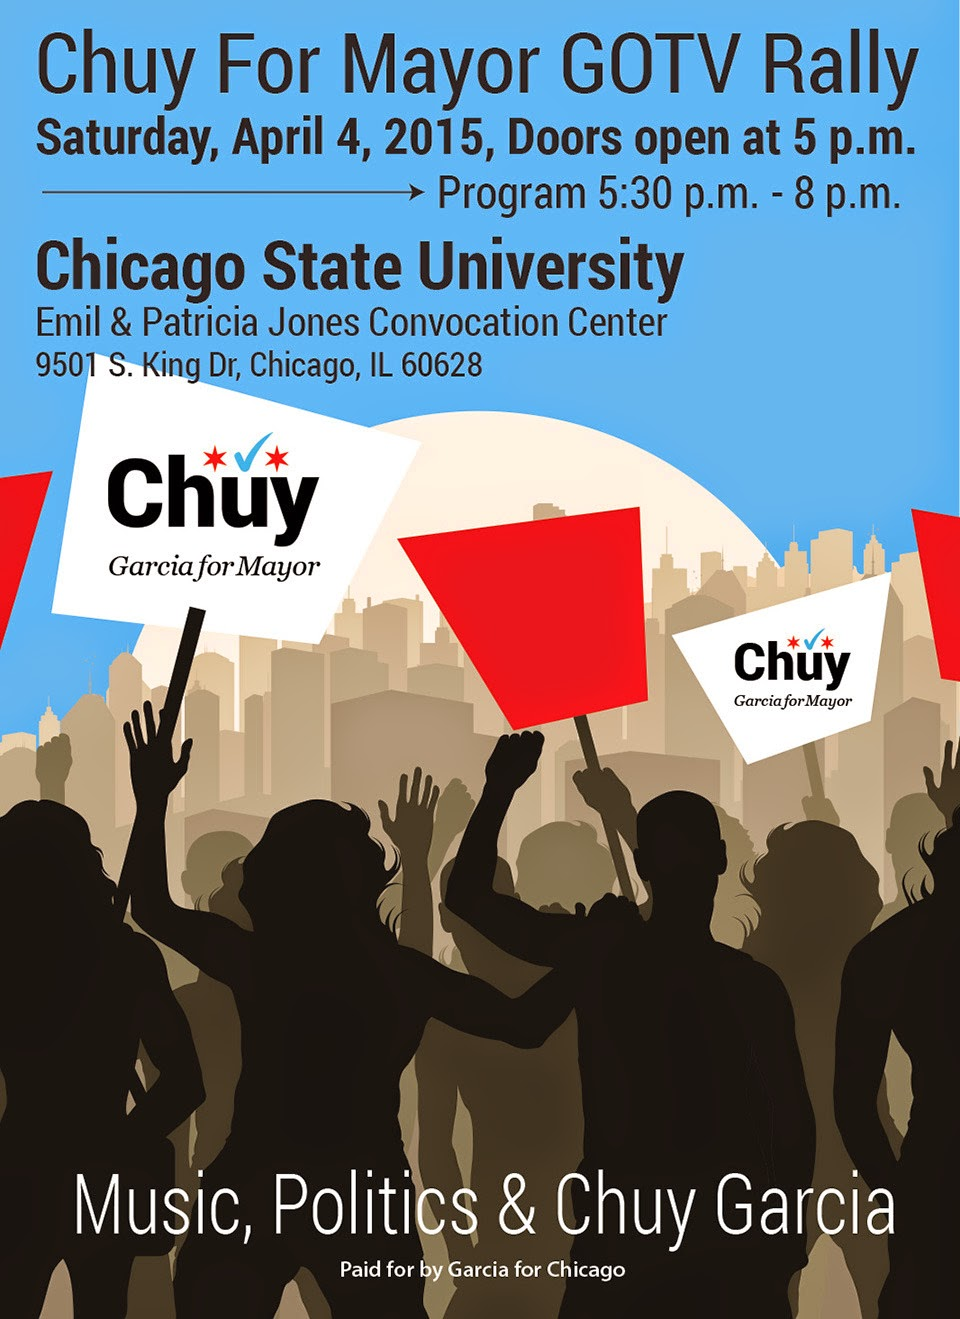 RALLY FOR CHUY THIS SATURDAY